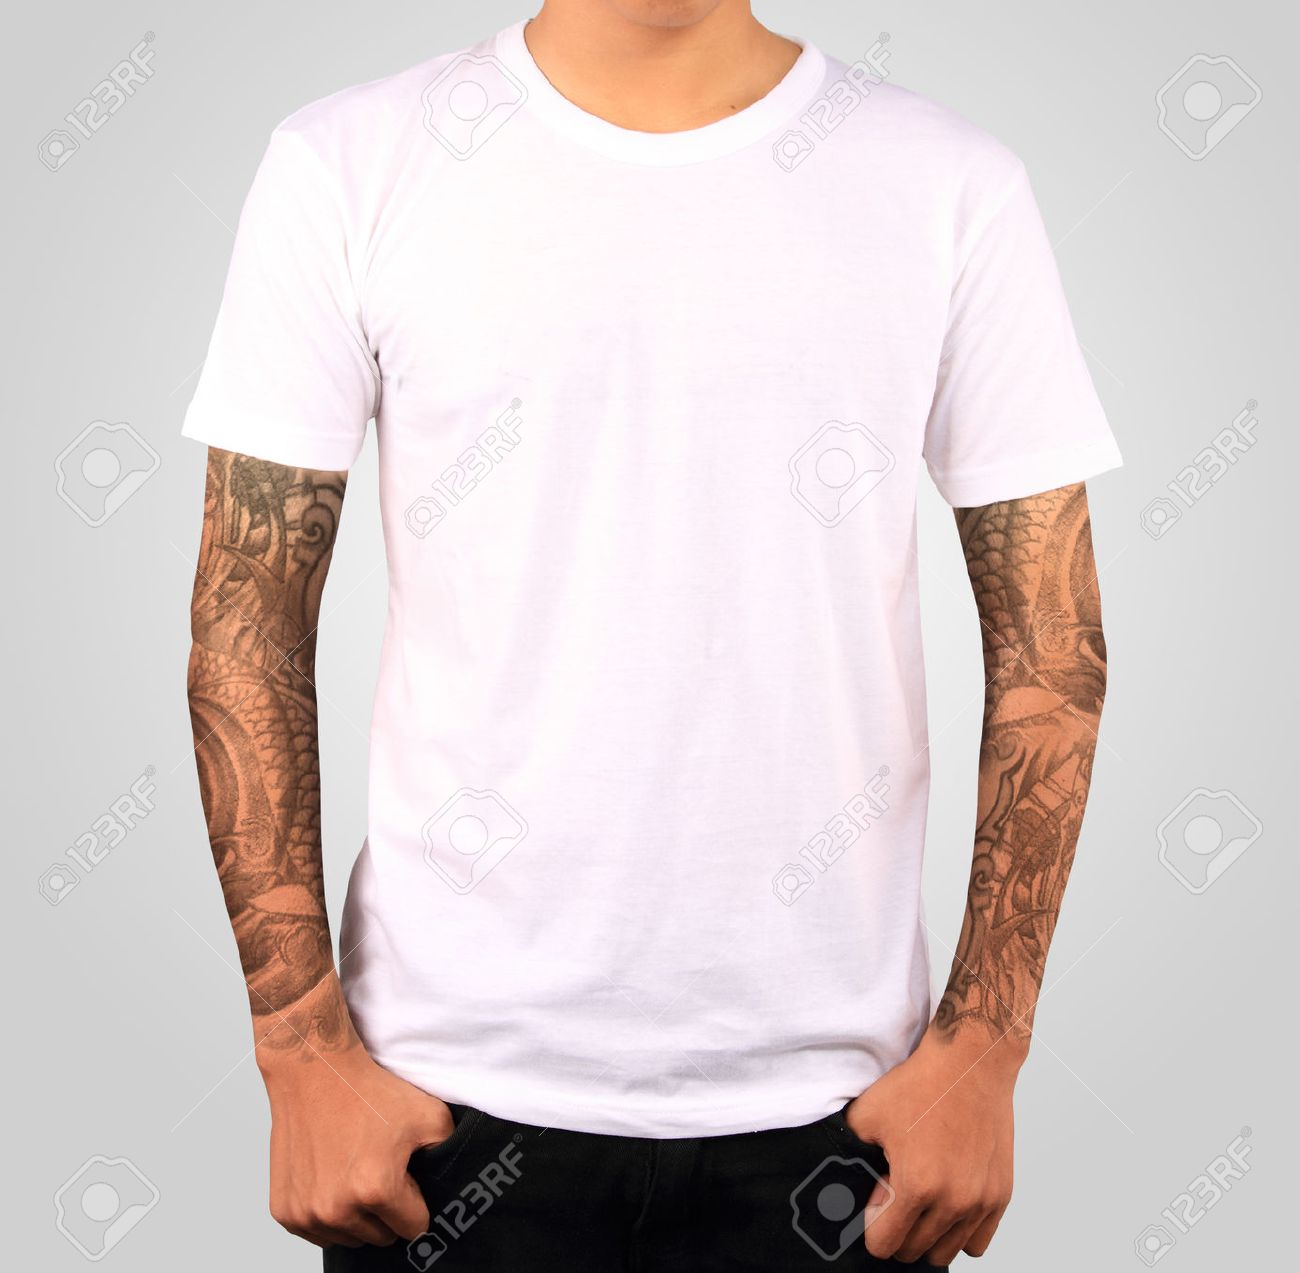 White T-shirt Template Stock Photo, Picture And Royalty Free Image ...